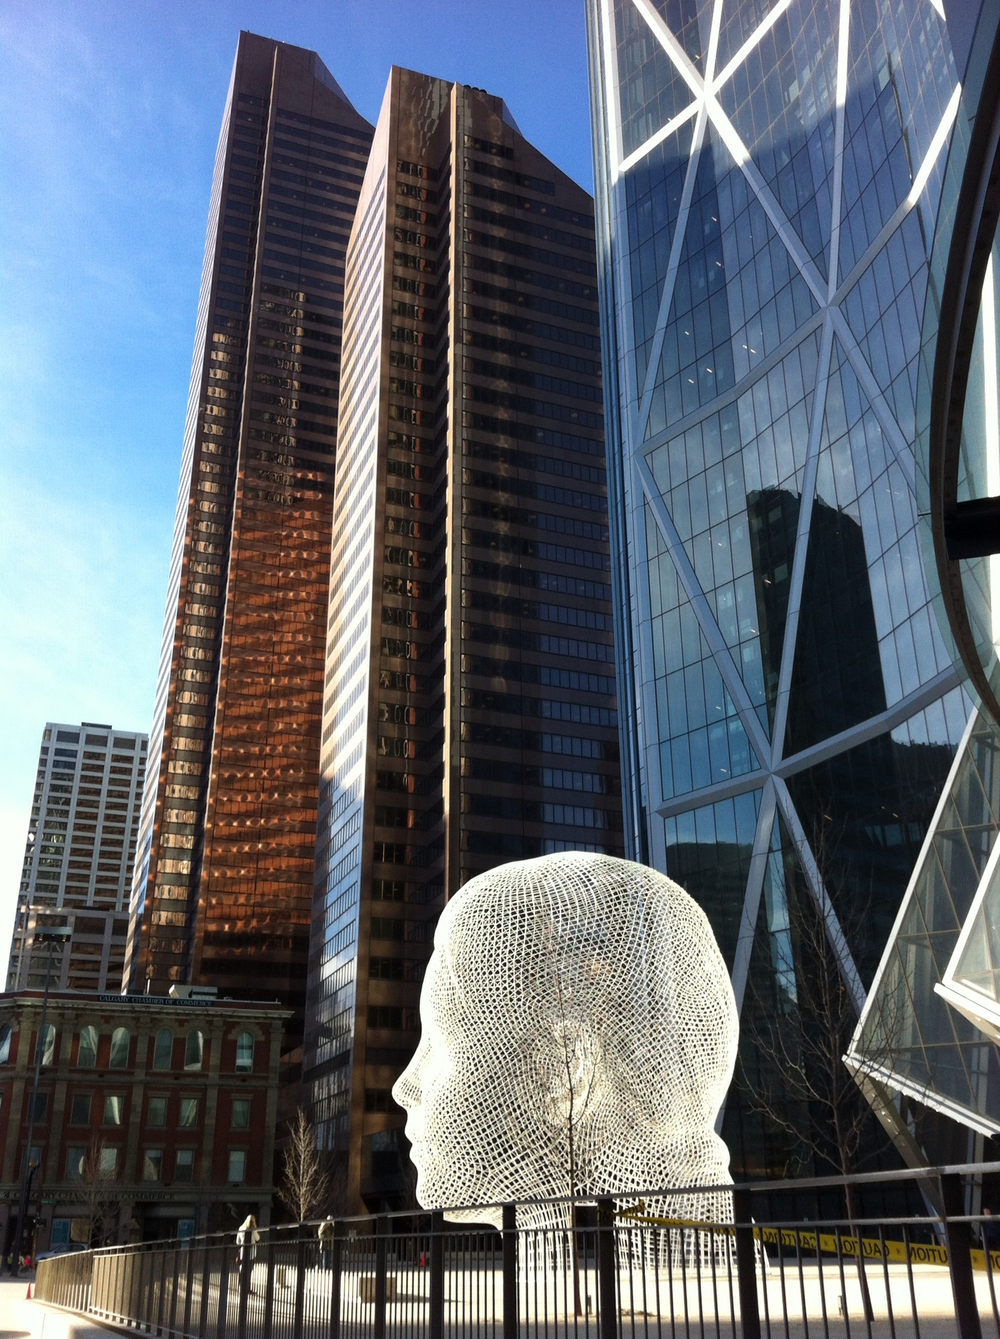 This photo captures the new Wonderland sculpture by Jaume Plensa on the plaza of the Norman Foster Bow Tower.  In the background is the Suncor Centre (built in the '80s), which consists of two towers the tallest one was the tallest in Calgary until the Bow was constructed.  The Suncor Tower has an interesting slanted roof top and the two towers together make a reference in their design to the iconic prairie grain elevator.